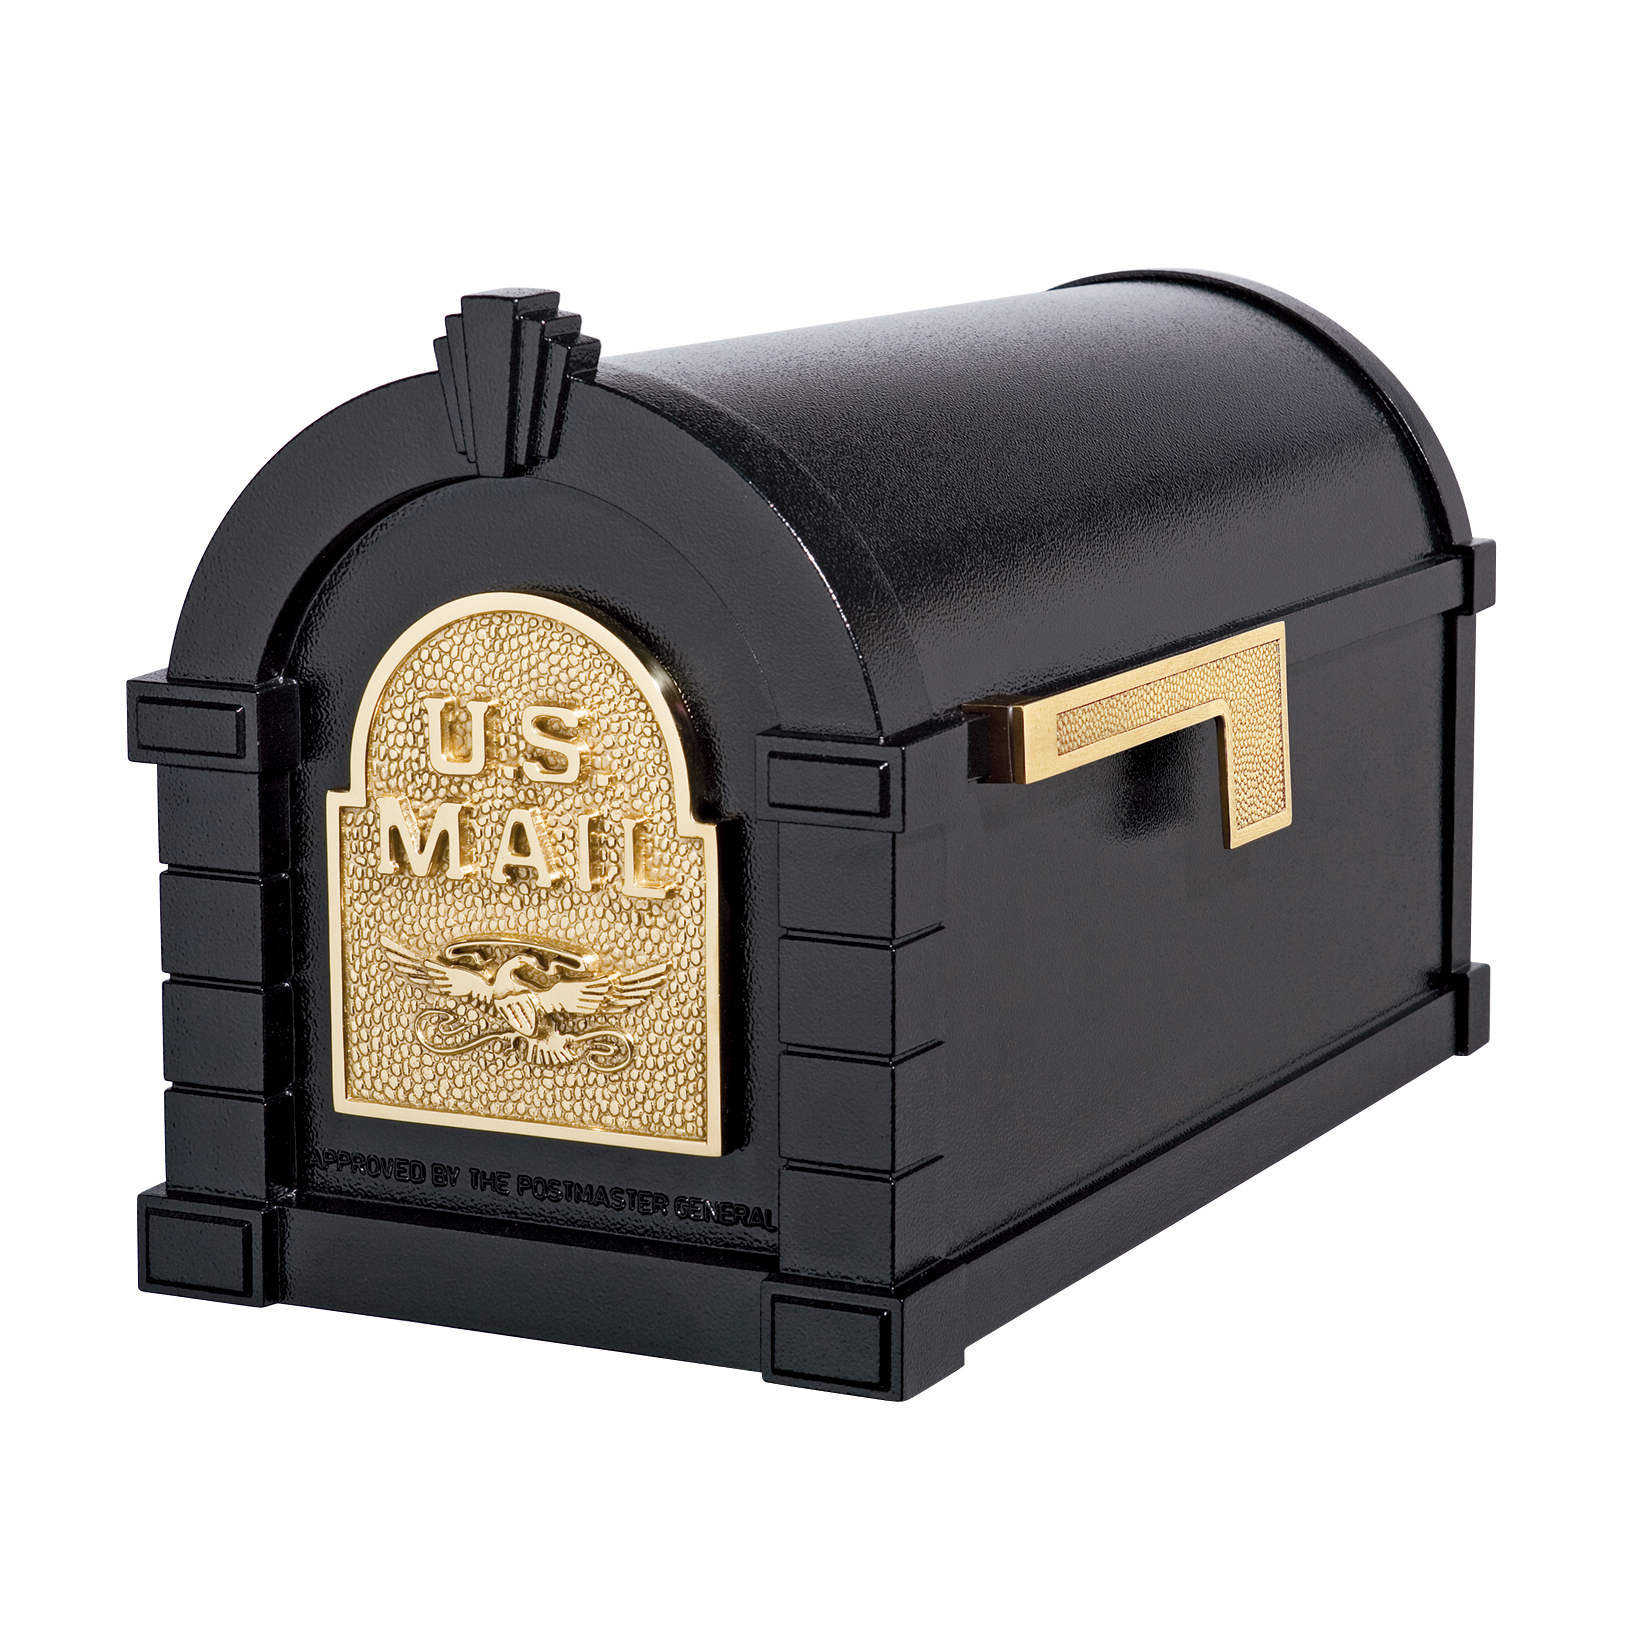 Gaines Eagle Keystone Mailboxes<br />Black with Polished Brass